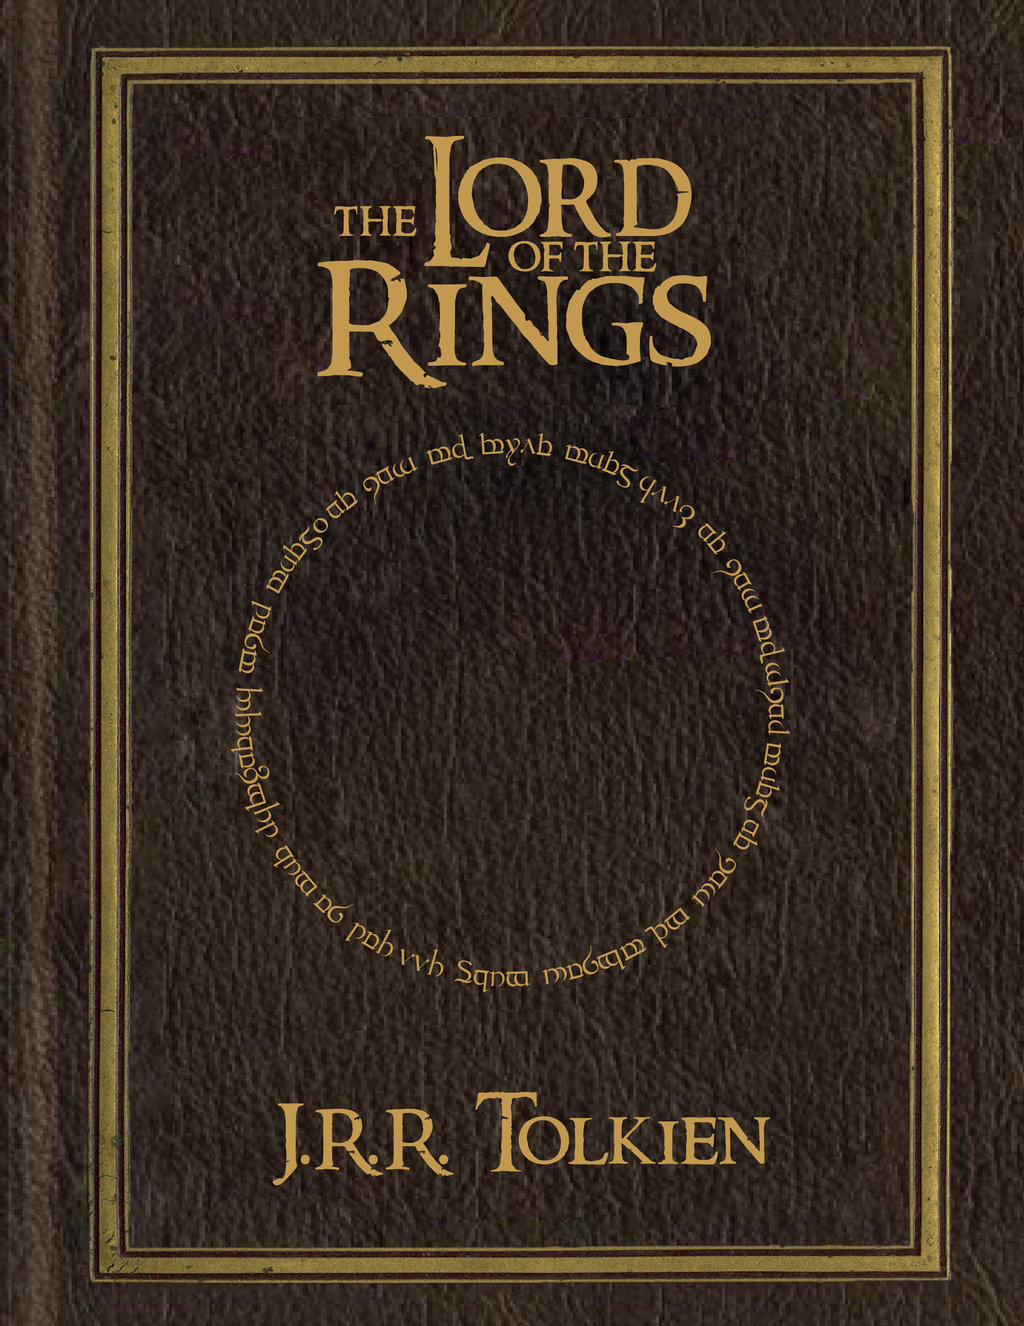 Tolkien - The Lord of the Rings